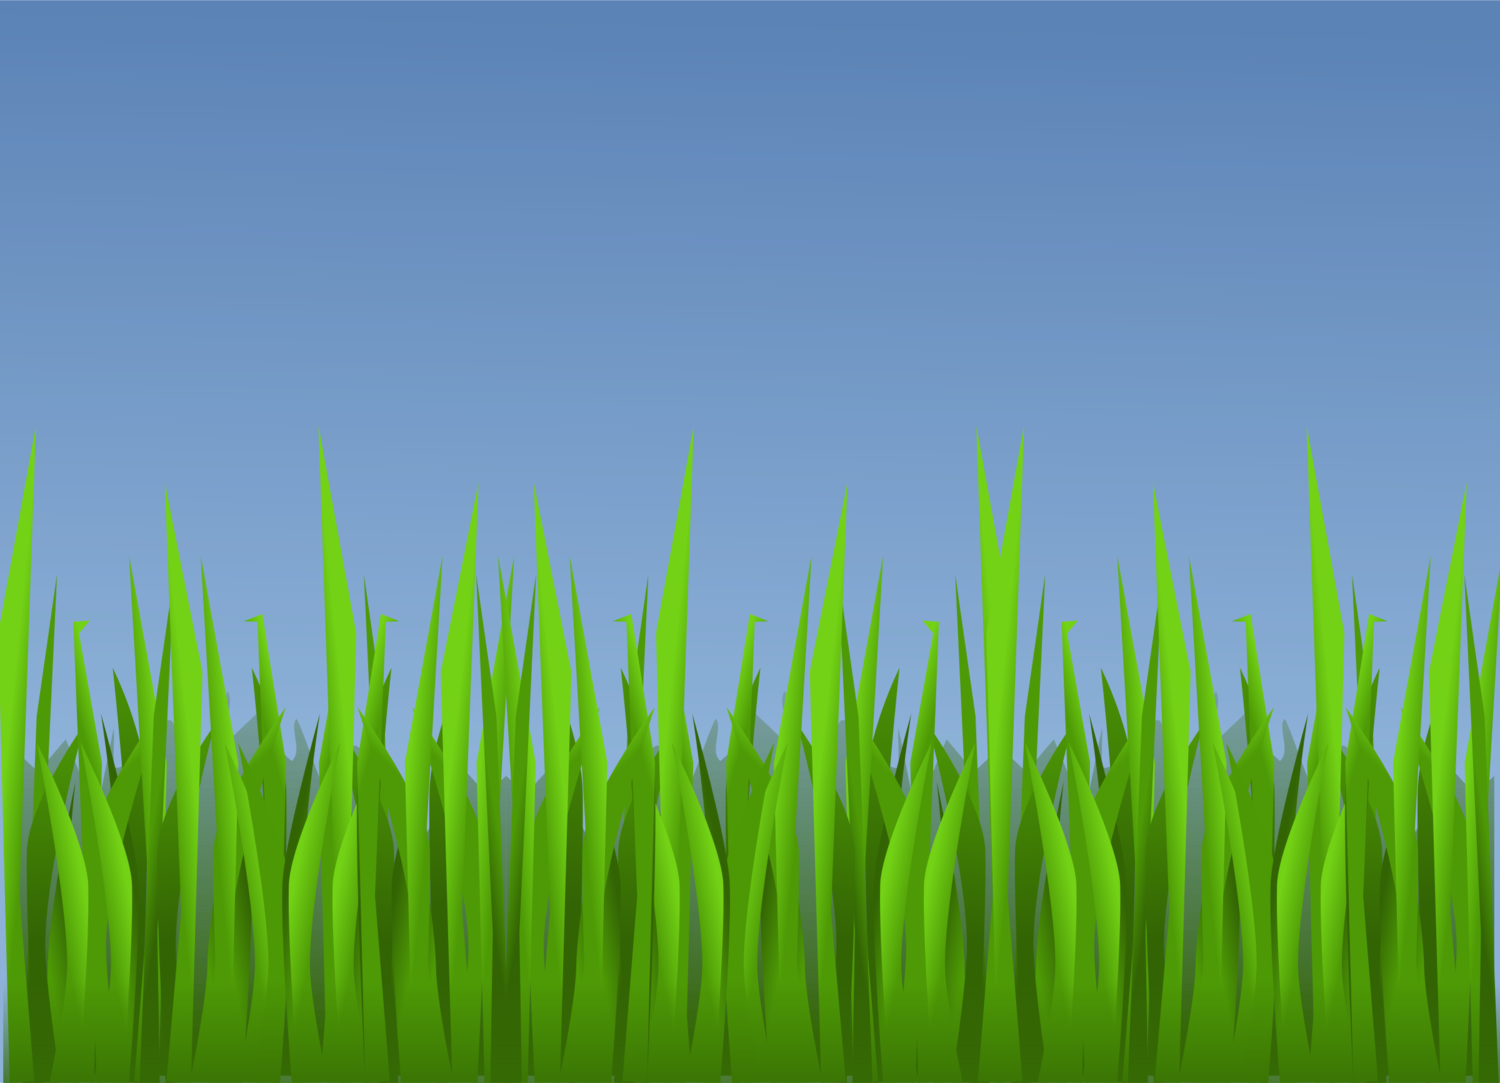 Clipart grass forage. Agri visions lloydminster agricultural